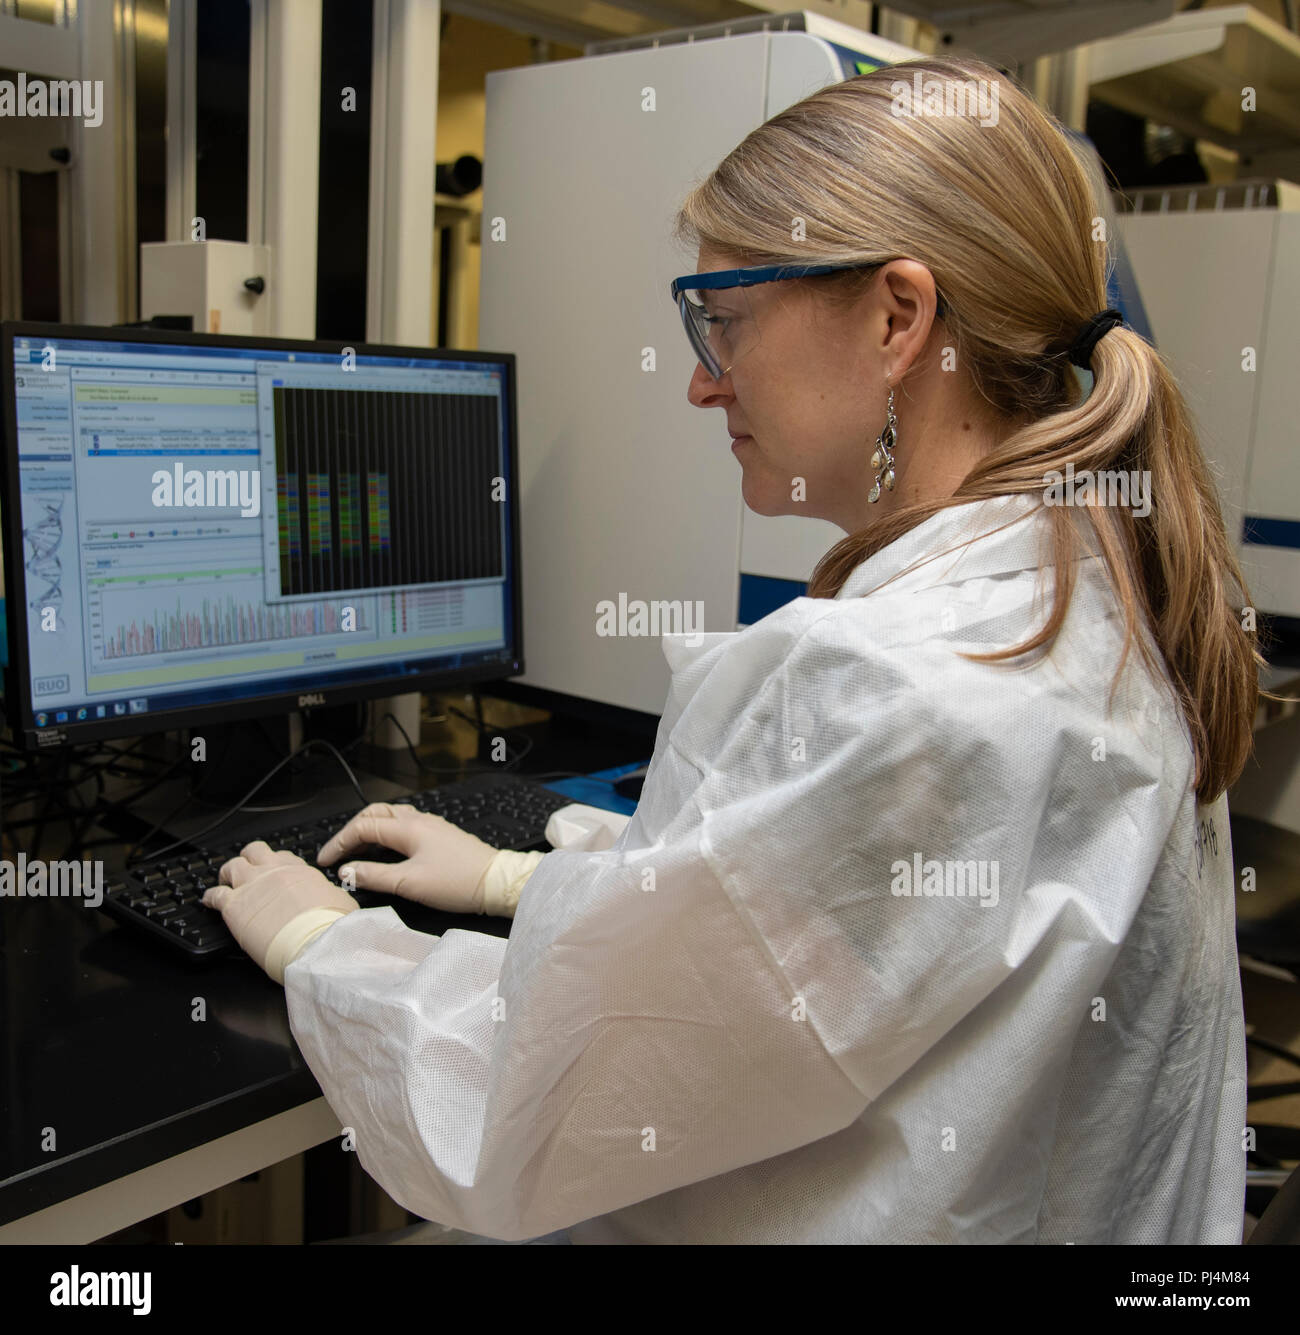 Medical Examiner Stock Photos & Medical Examiner Stock Images - Alamy